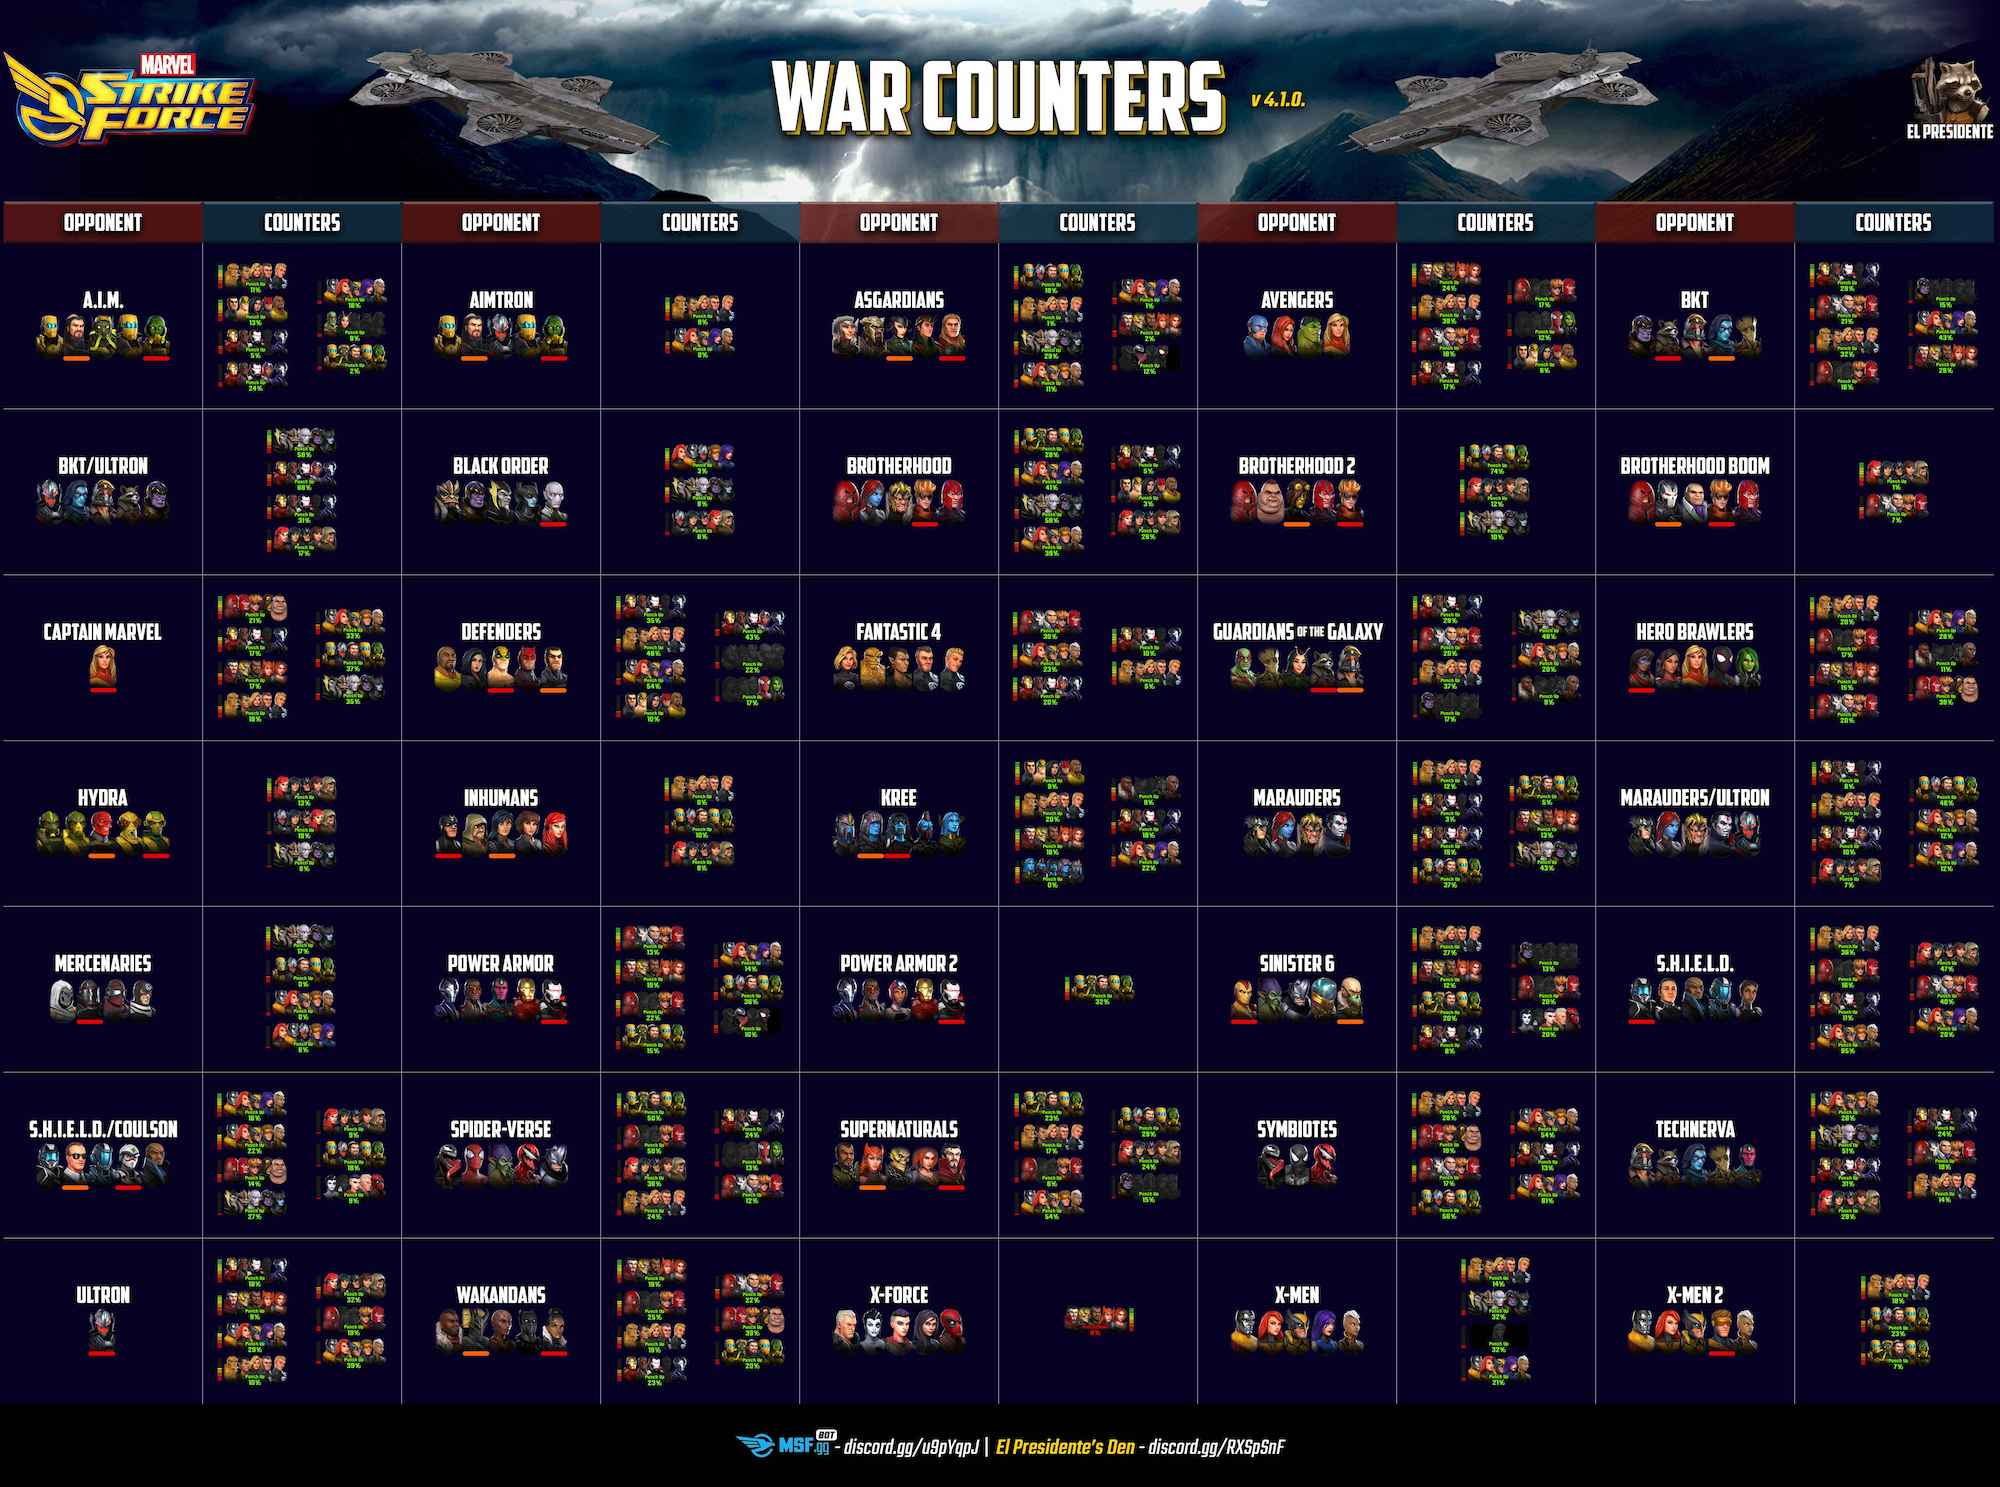 MSF Alliance War Counters